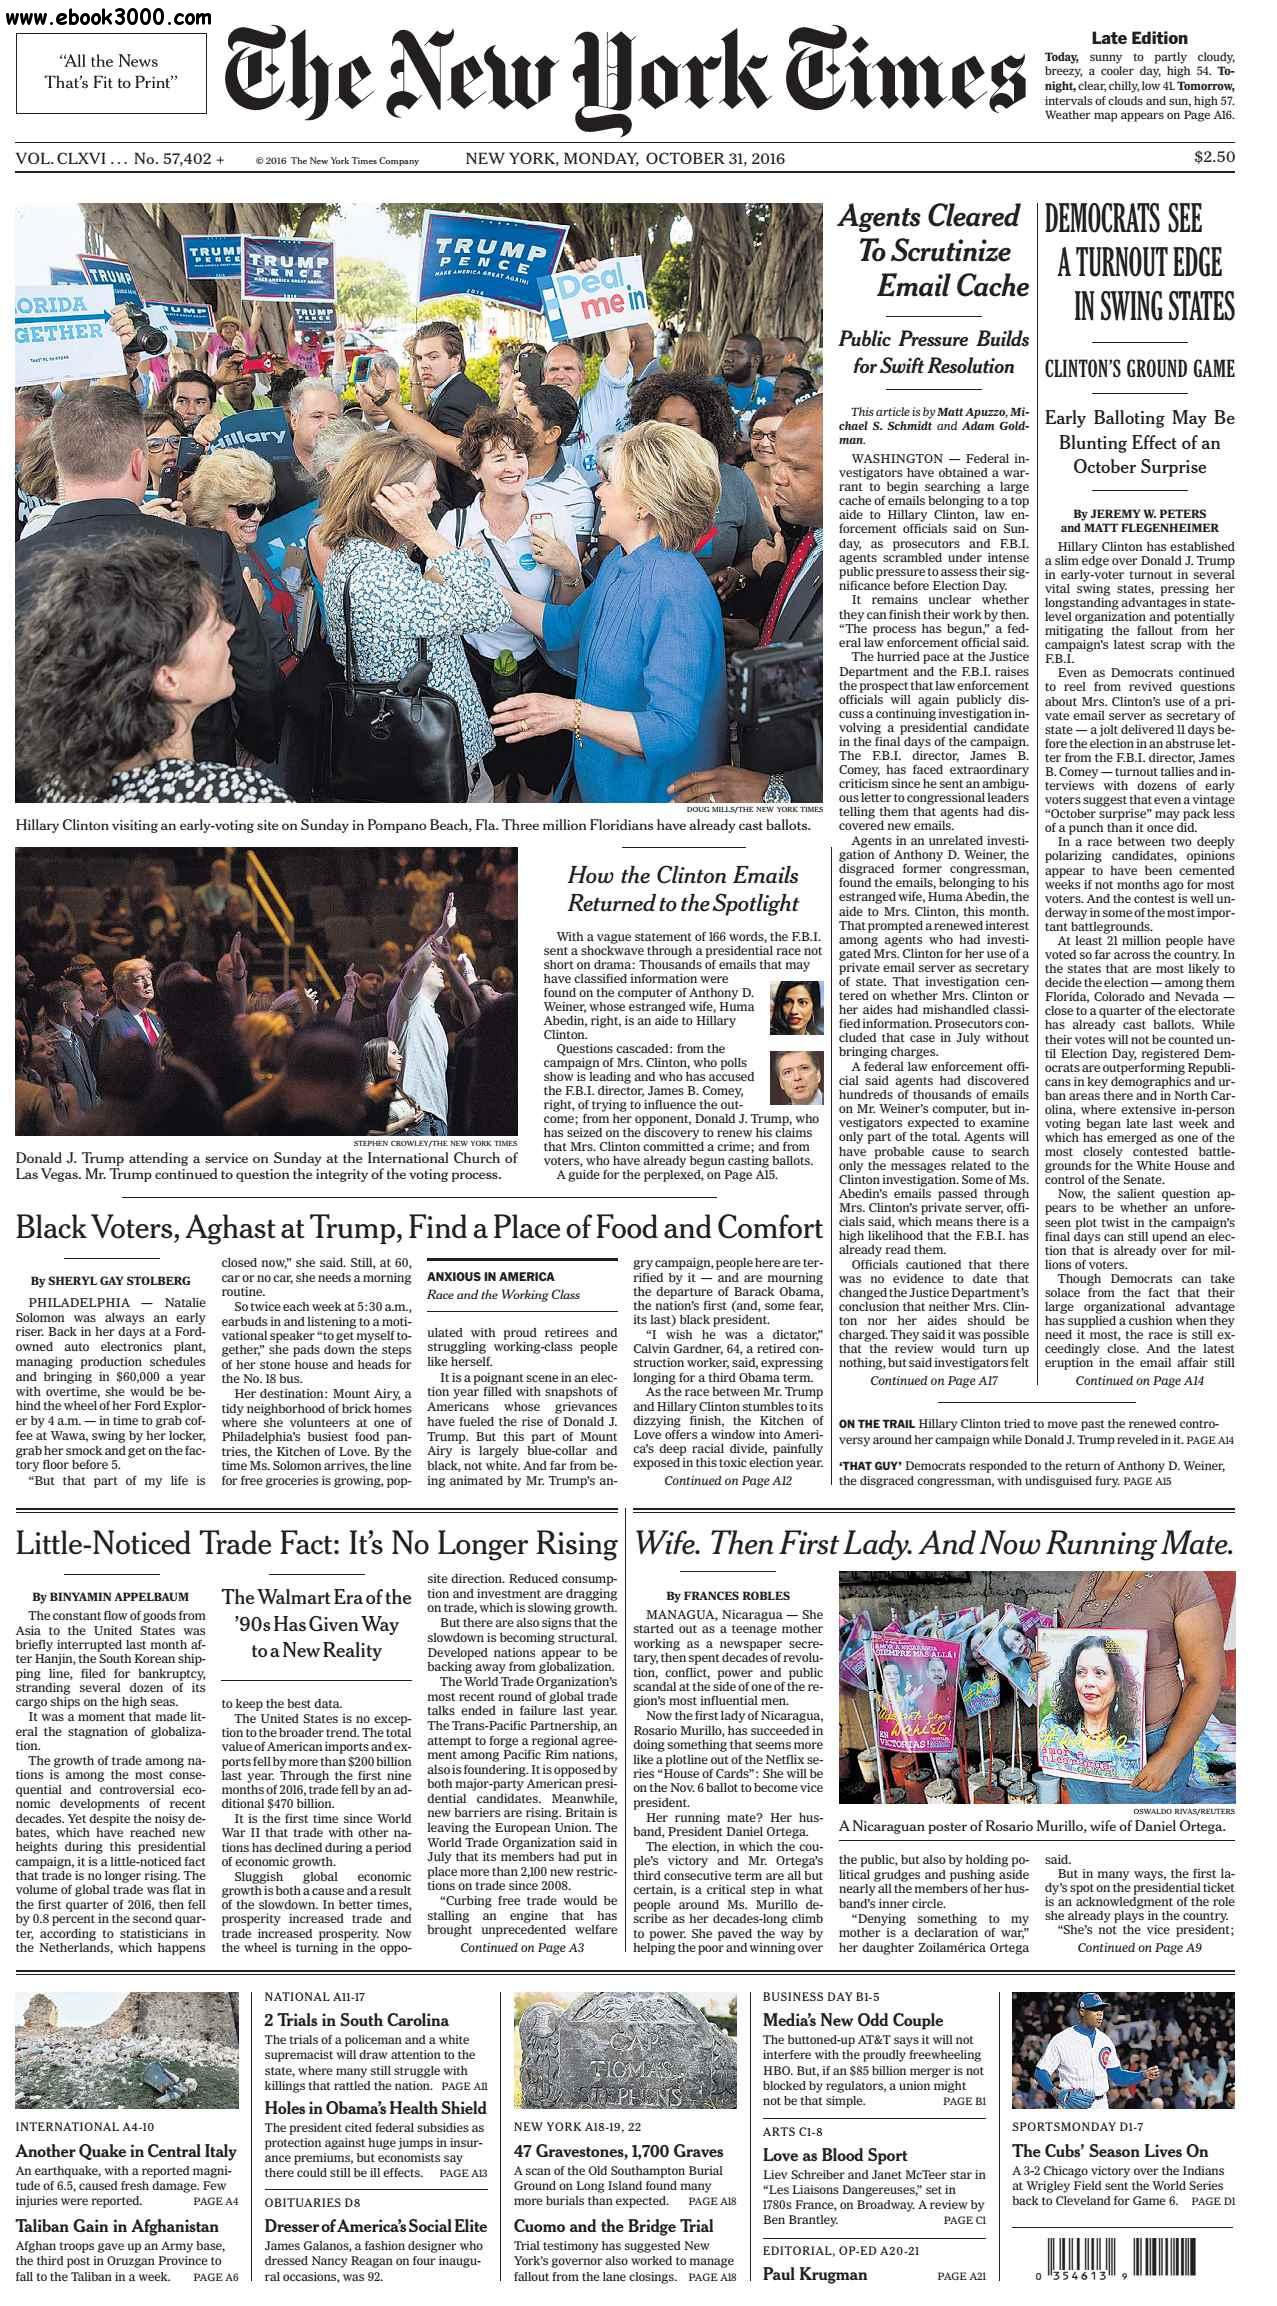 New york times search dating back to 1993 leaks comey